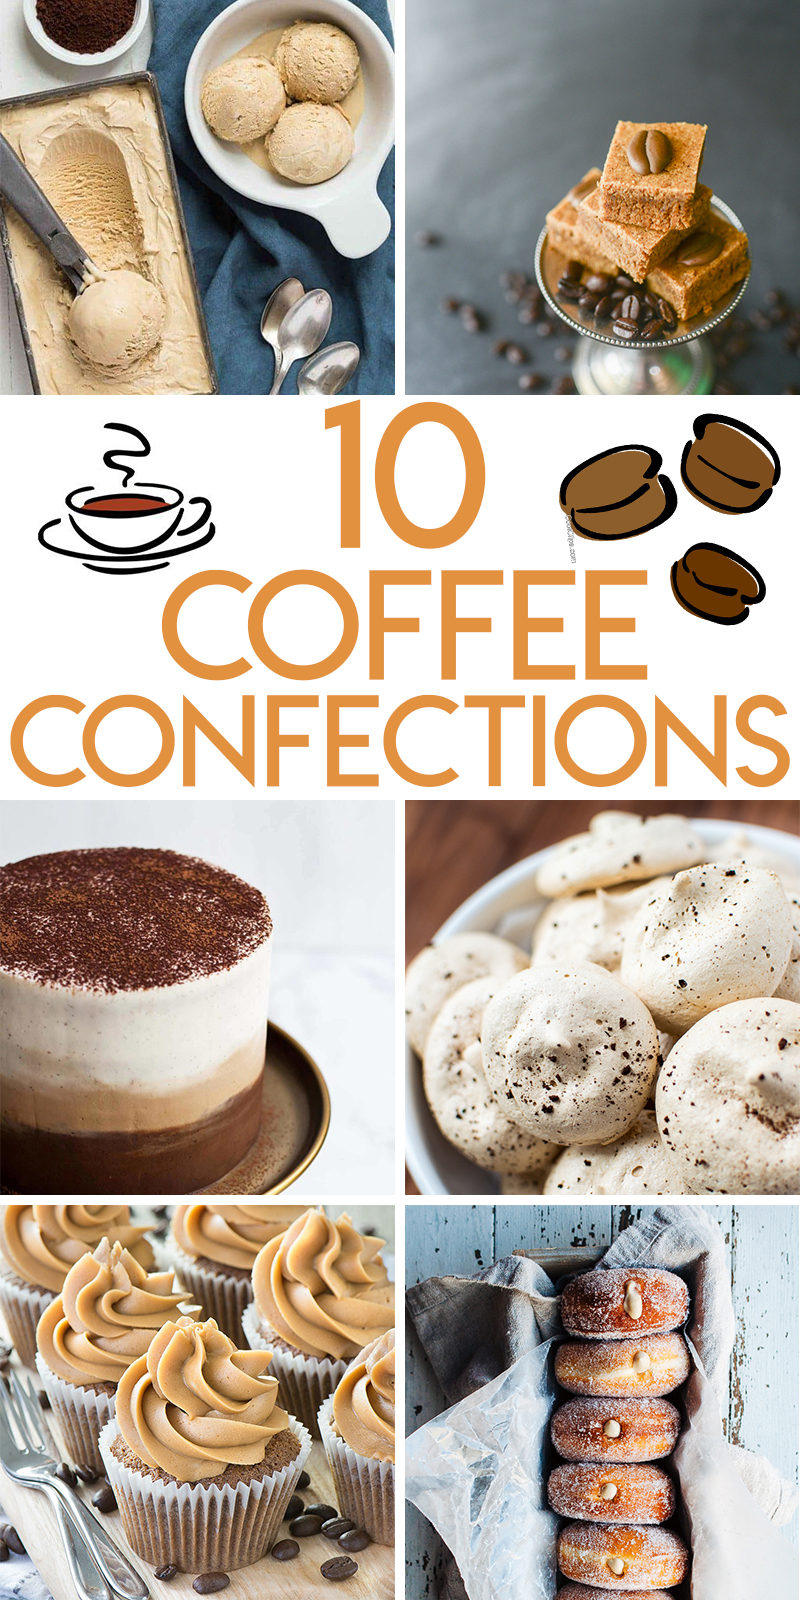 12 delectable coffee treats and confections